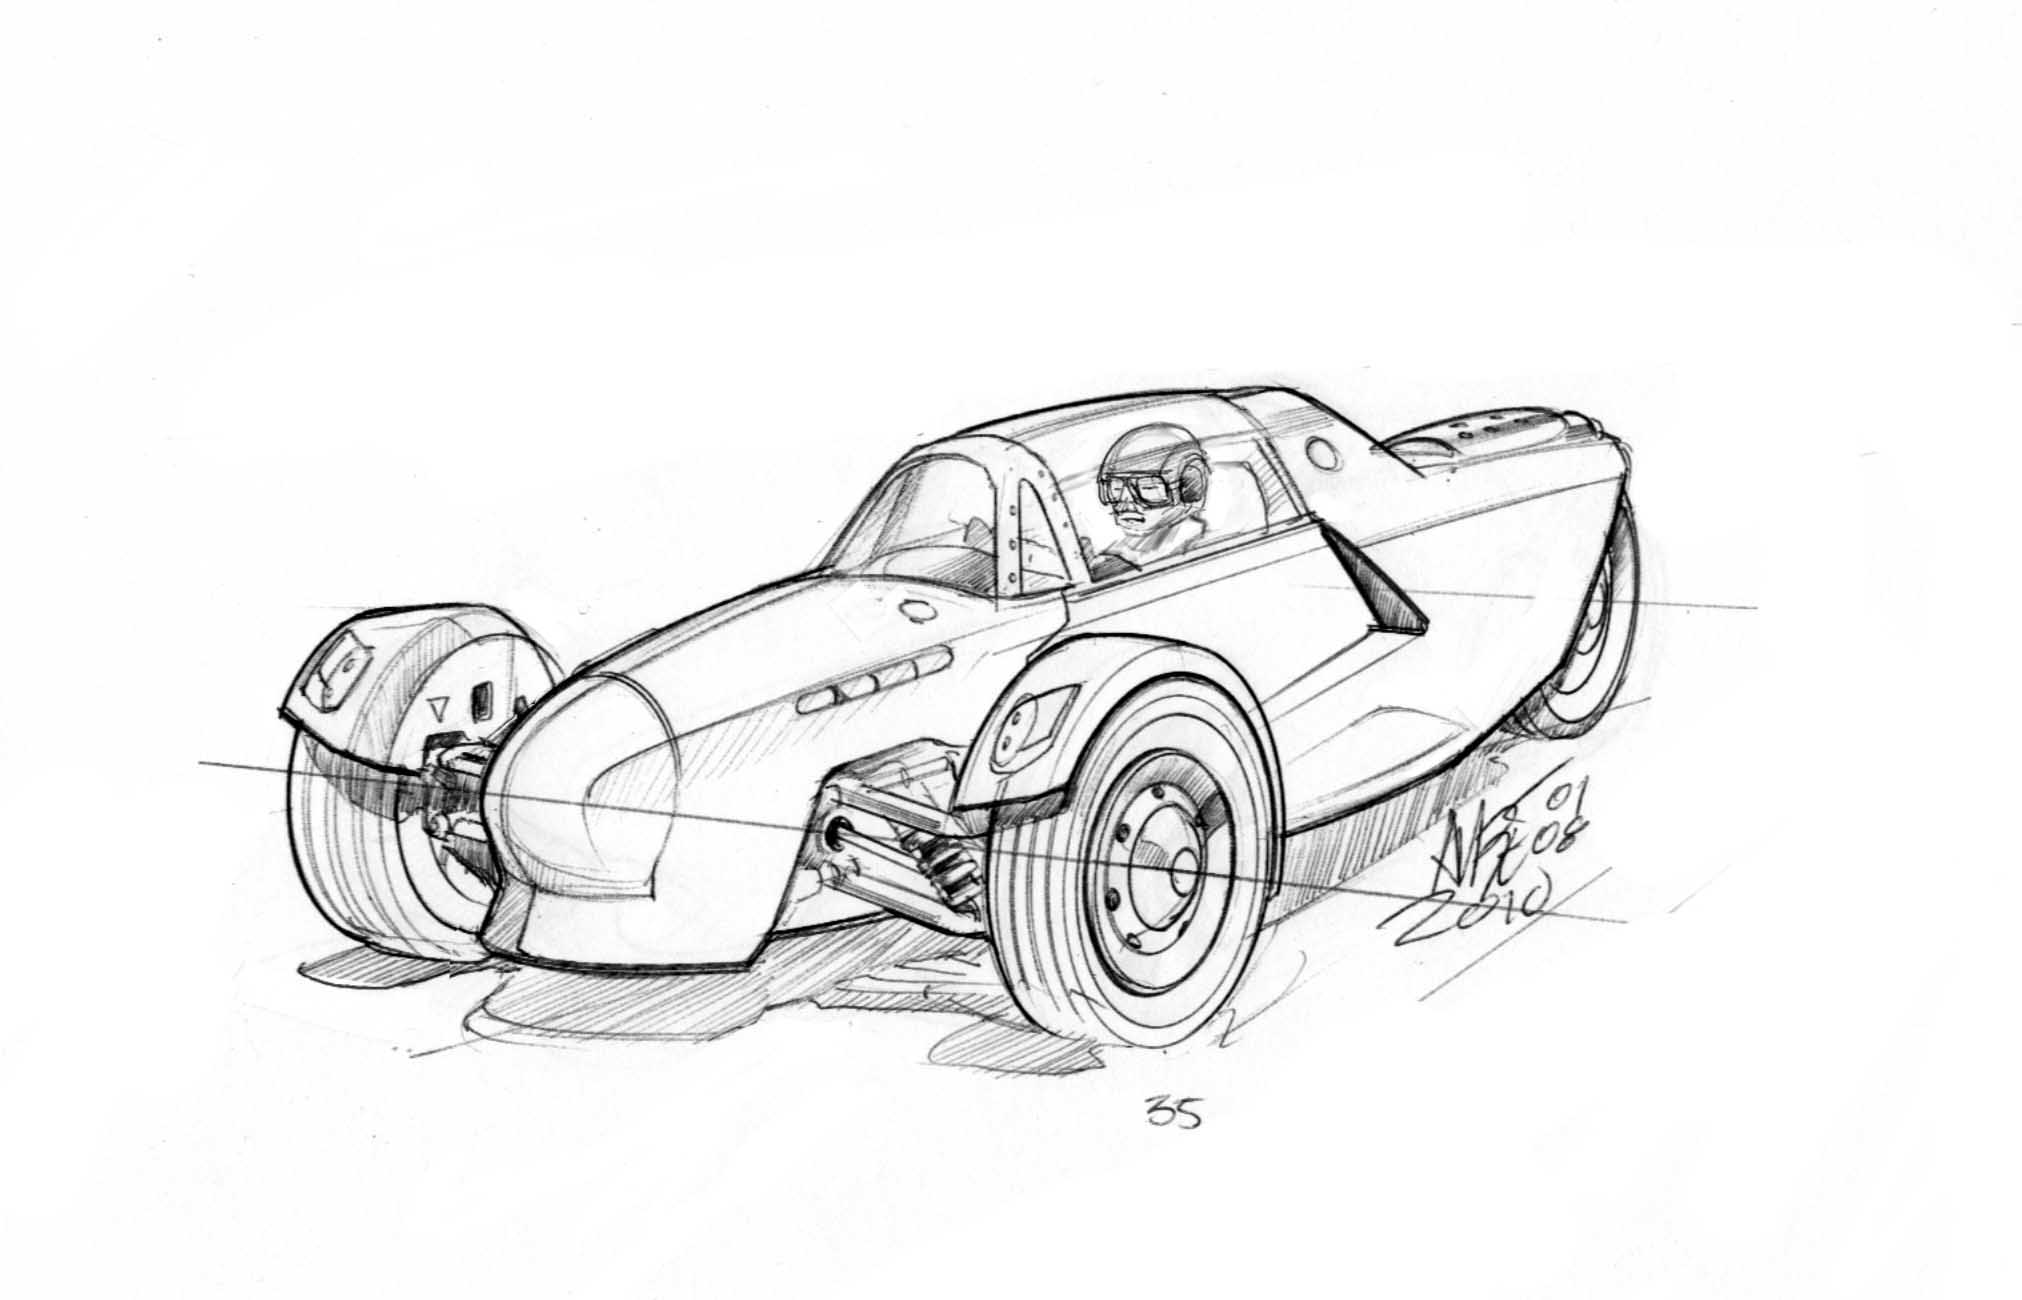 Motomobile Uci Mark Iii Spitfire By Martin Aube At